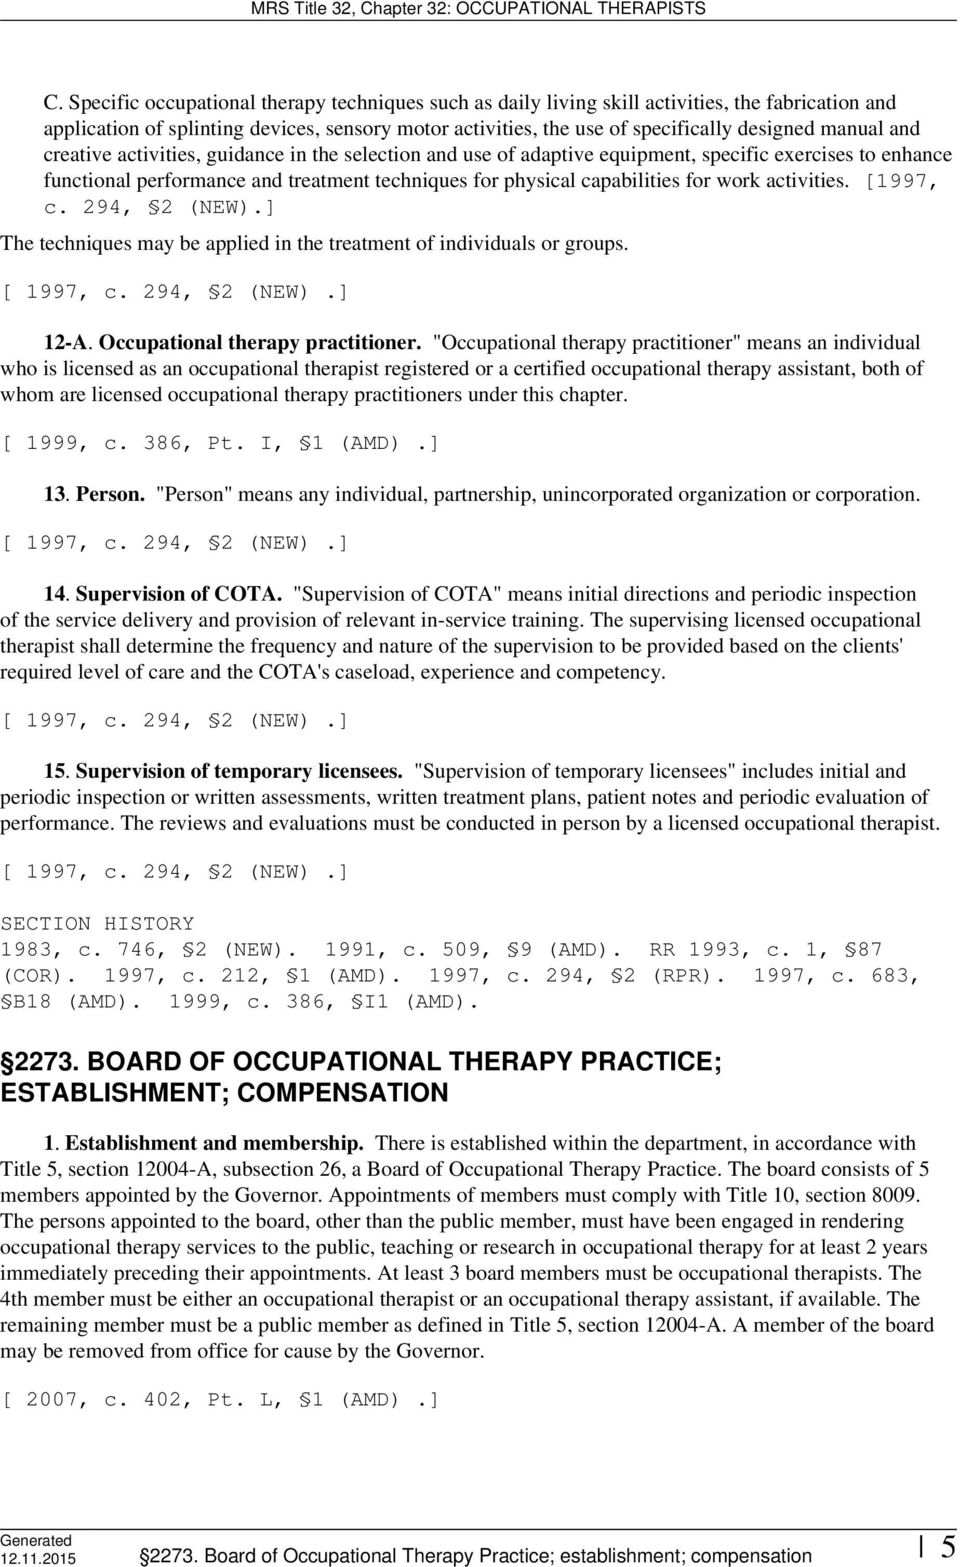 work activities. [1997, c. 294, 2 (NEW).] The techniques may be applied in the treatment of individuals or groups. 12-A. Occupational therapy practitioner.